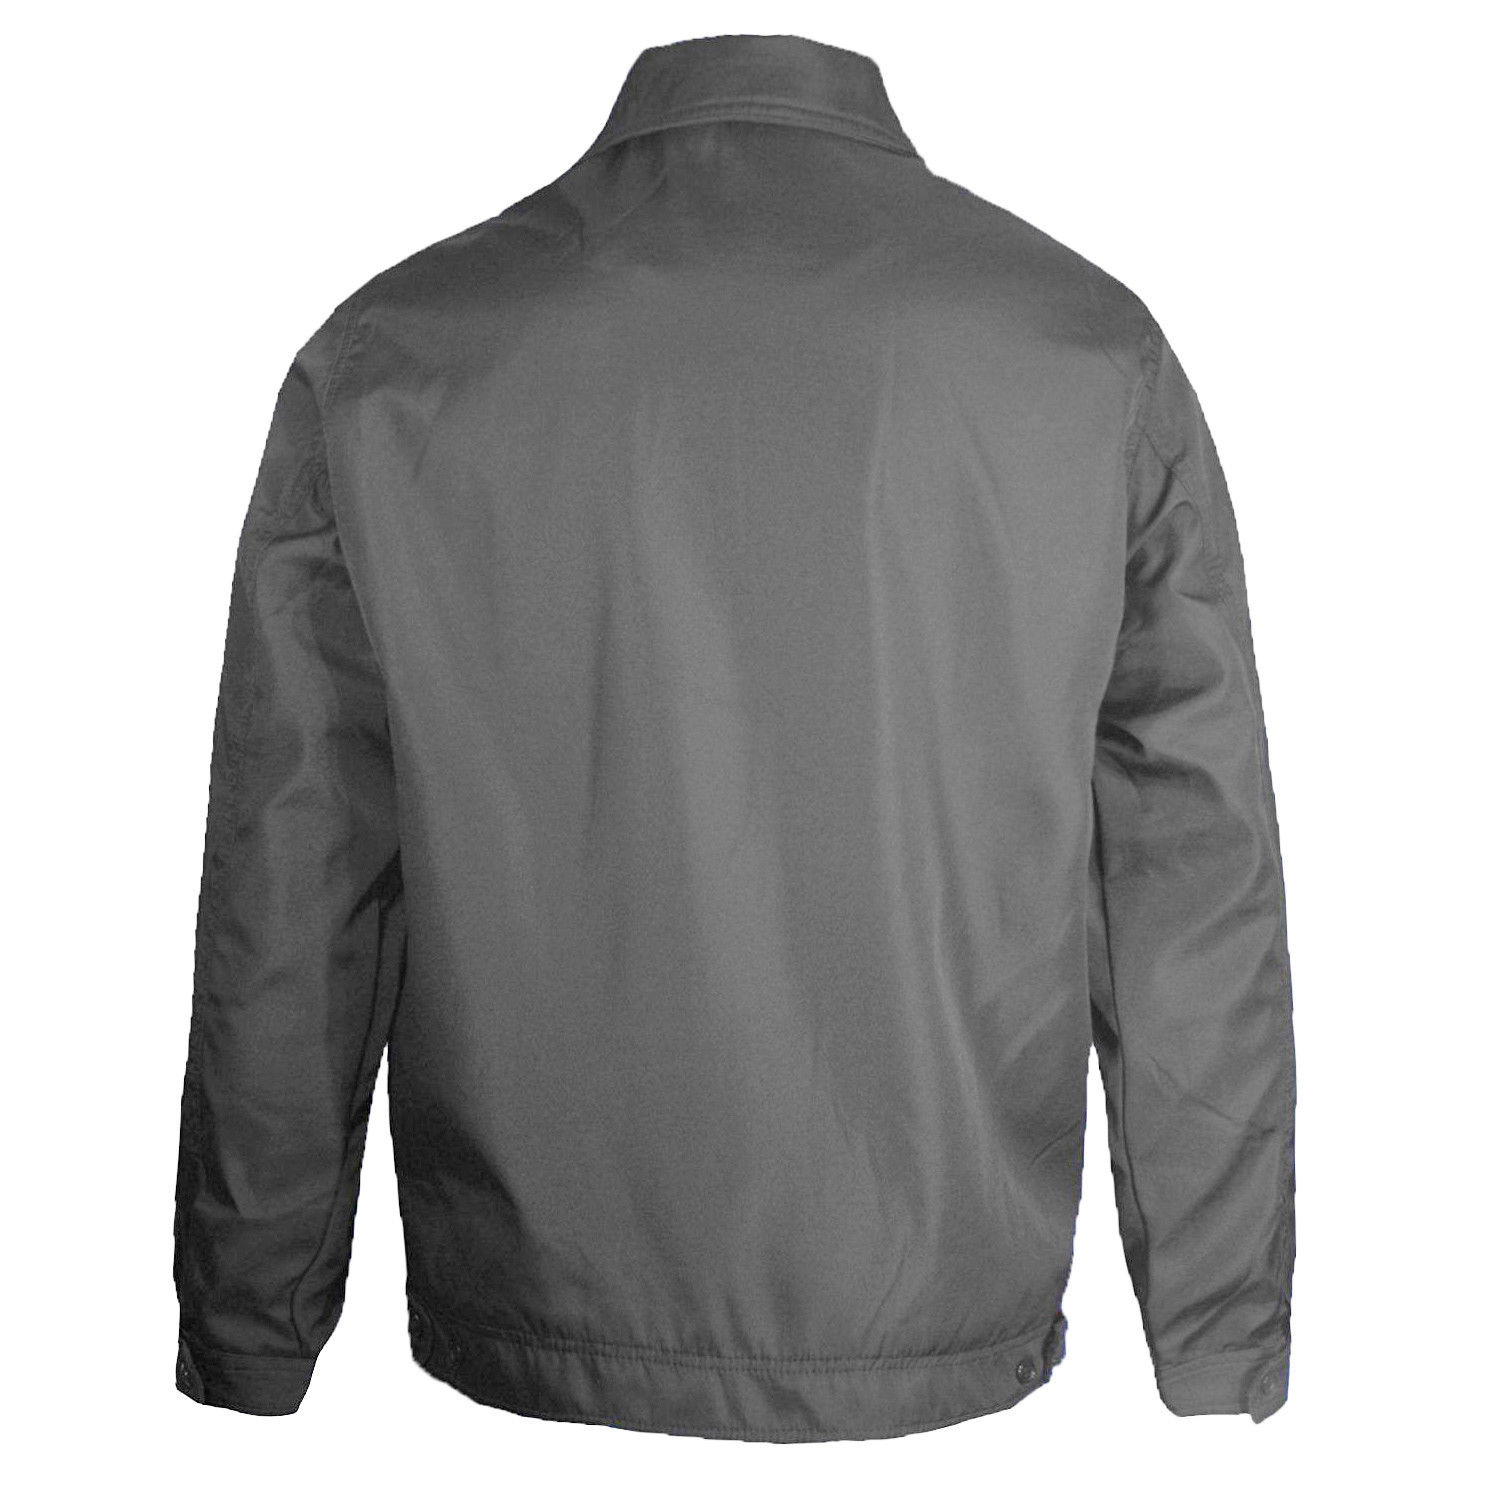 Men-039-s-Microfiber-Golf-Sport-Water-Resistant-Zip-Up-Windbreaker-Jacket-BENNY thumbnail 15